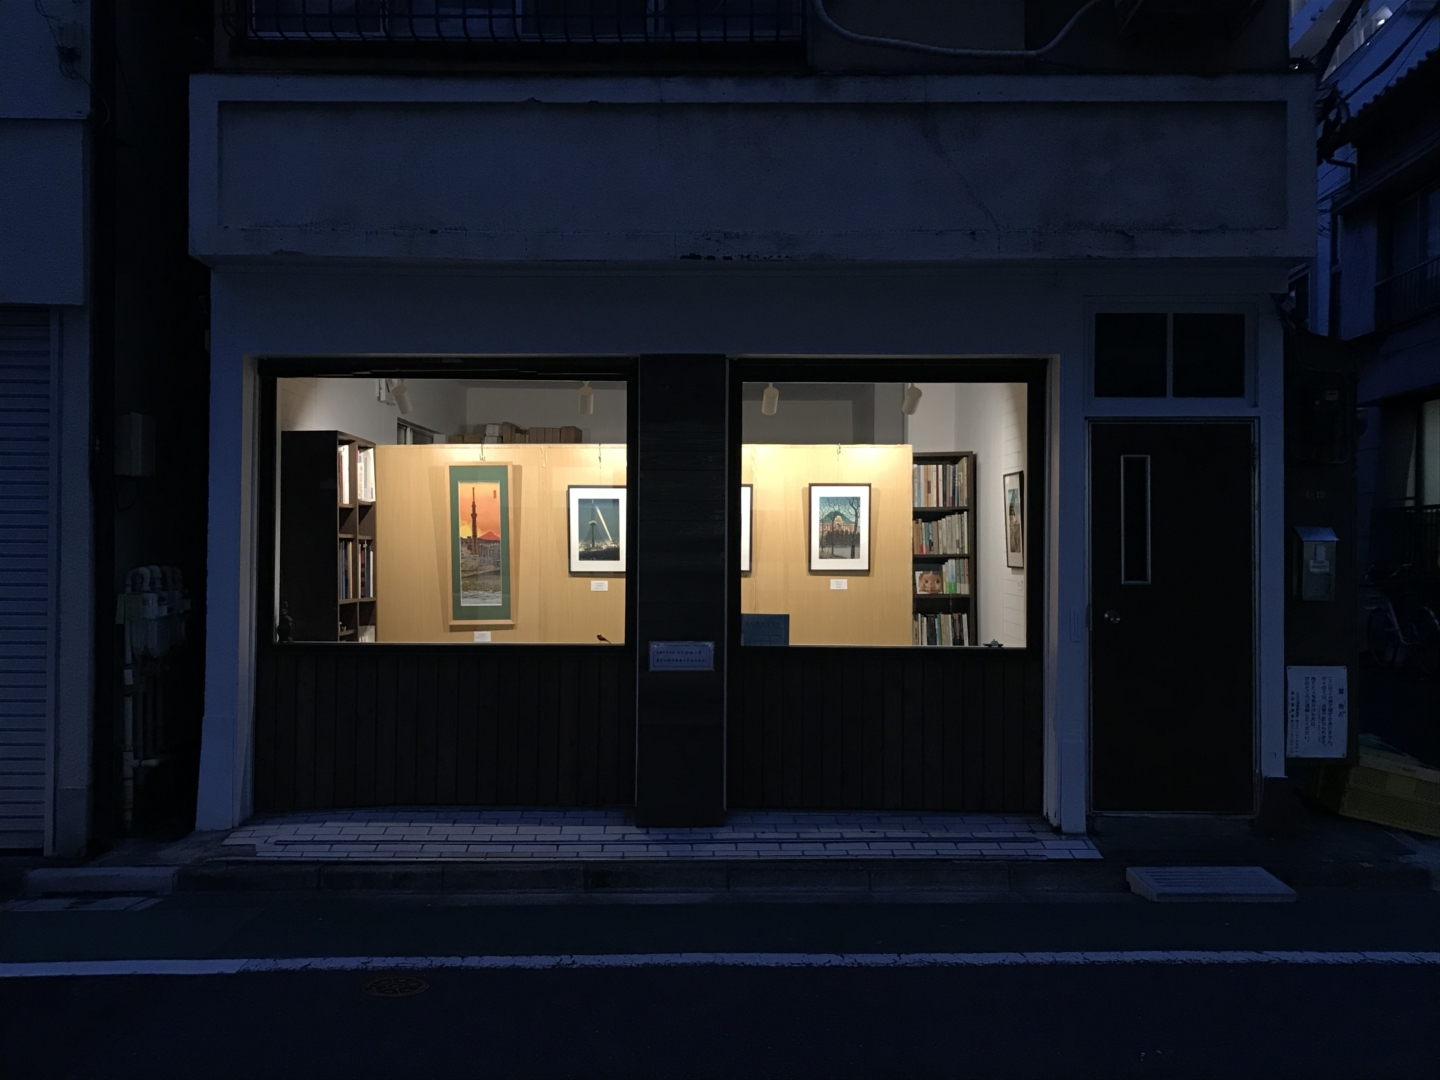 With woodblock prints, the Roadside Gallery coaxes passersby into a new world